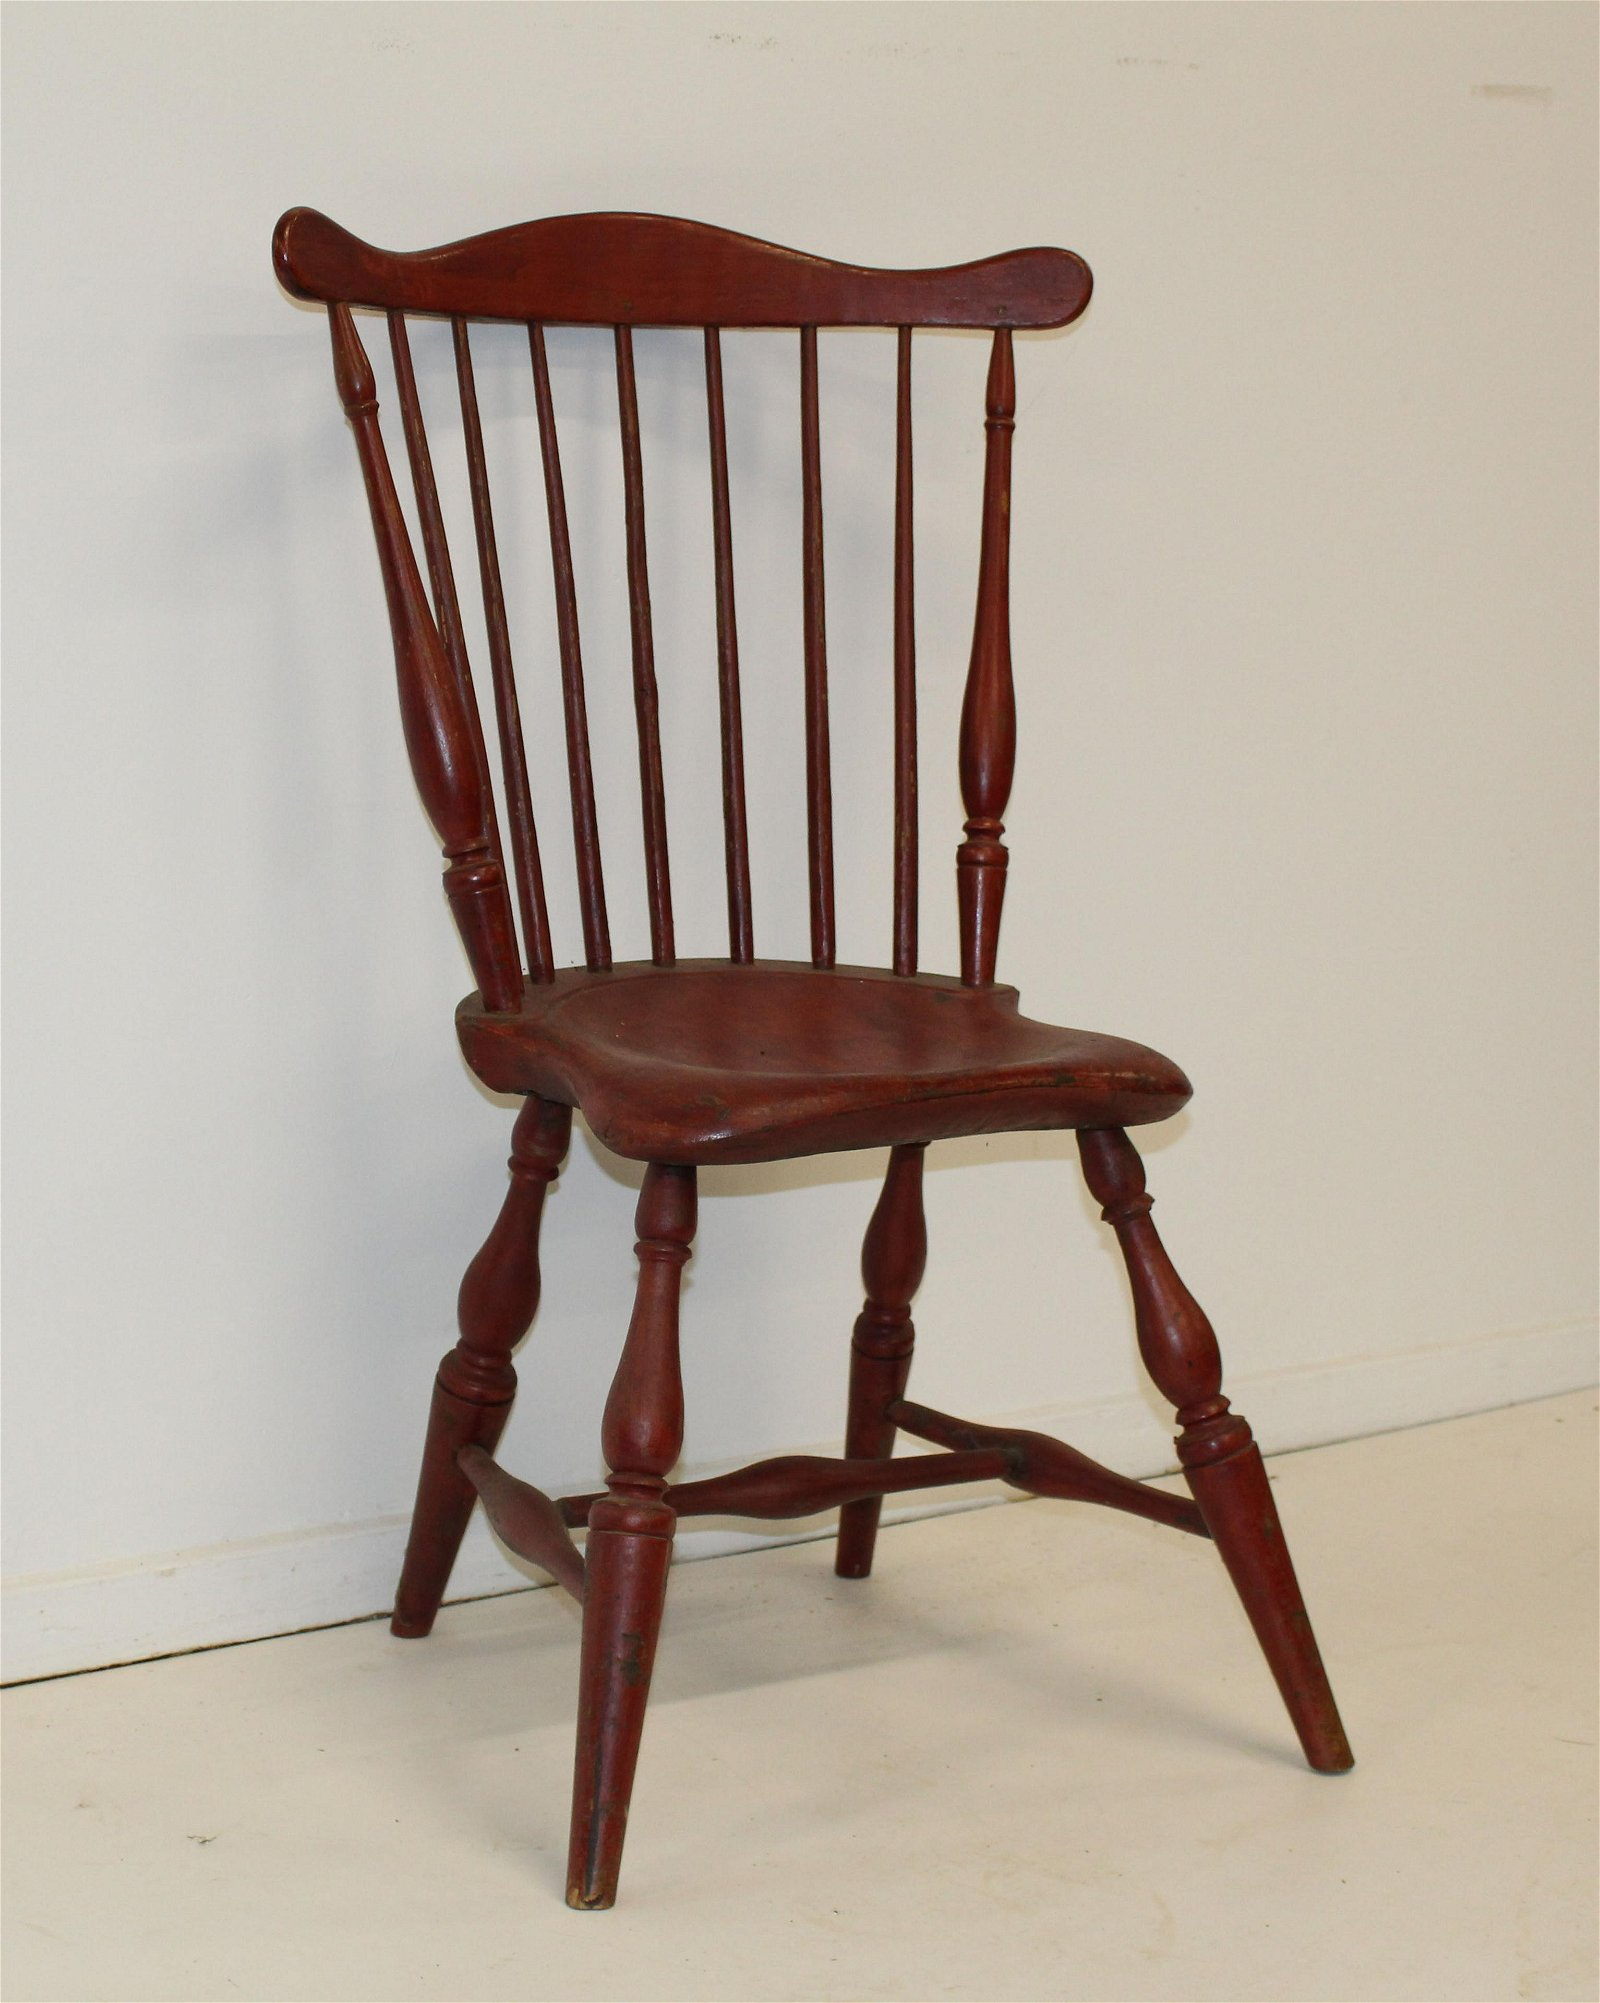 18th c fan back Windsor chair in old surface